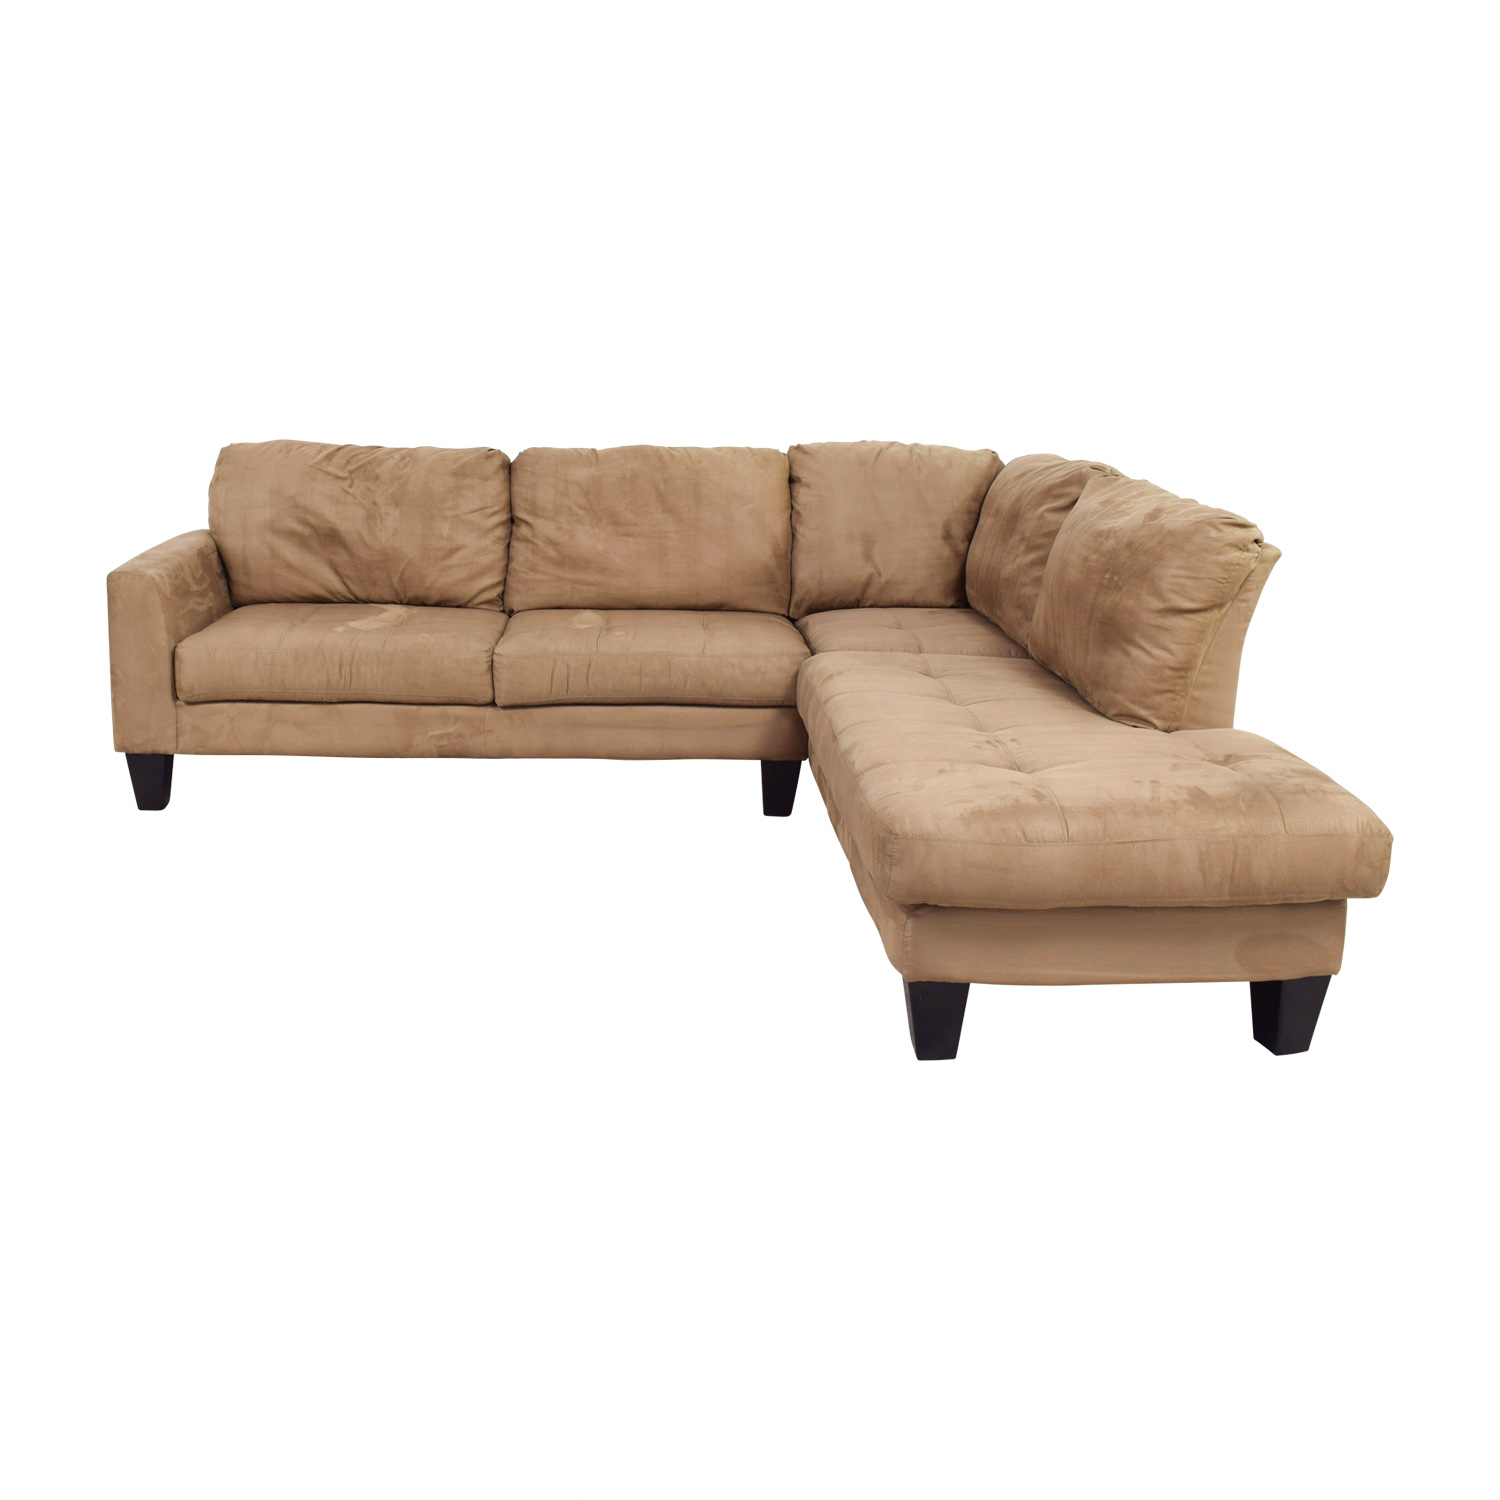 Poundex Poundex Beige L-Shaped Sectional nyc